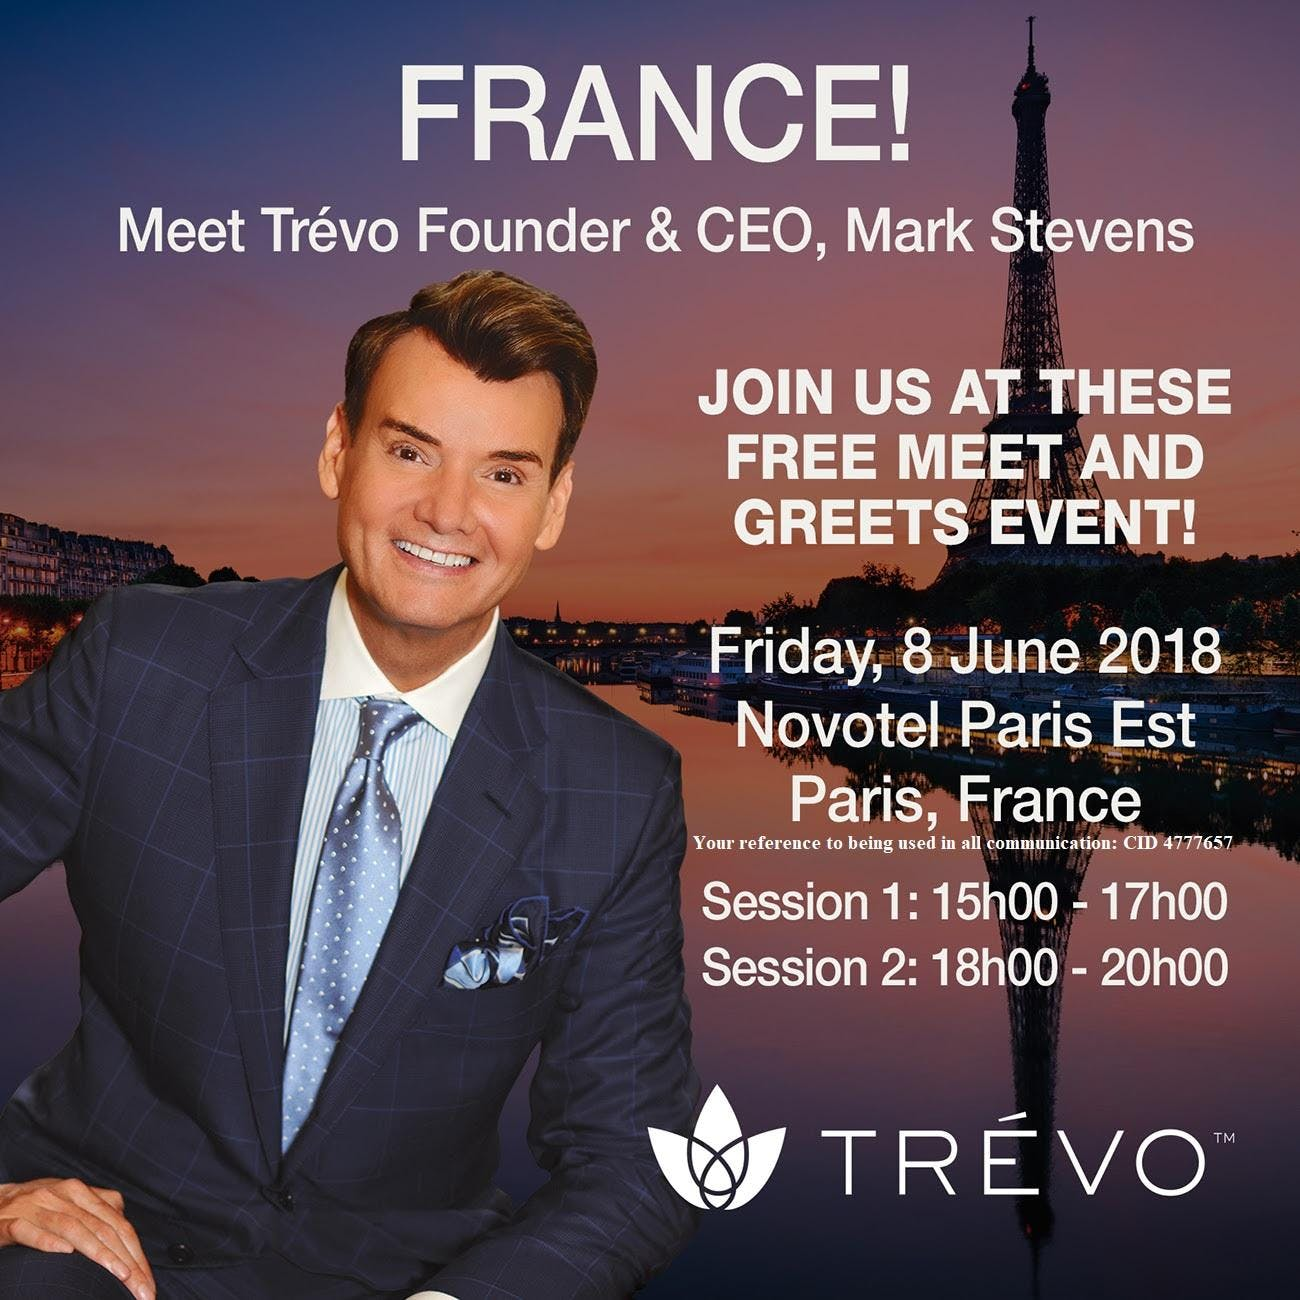 Trvo Founder And Ceo Meet And Greet And Training 8 Jui 2018